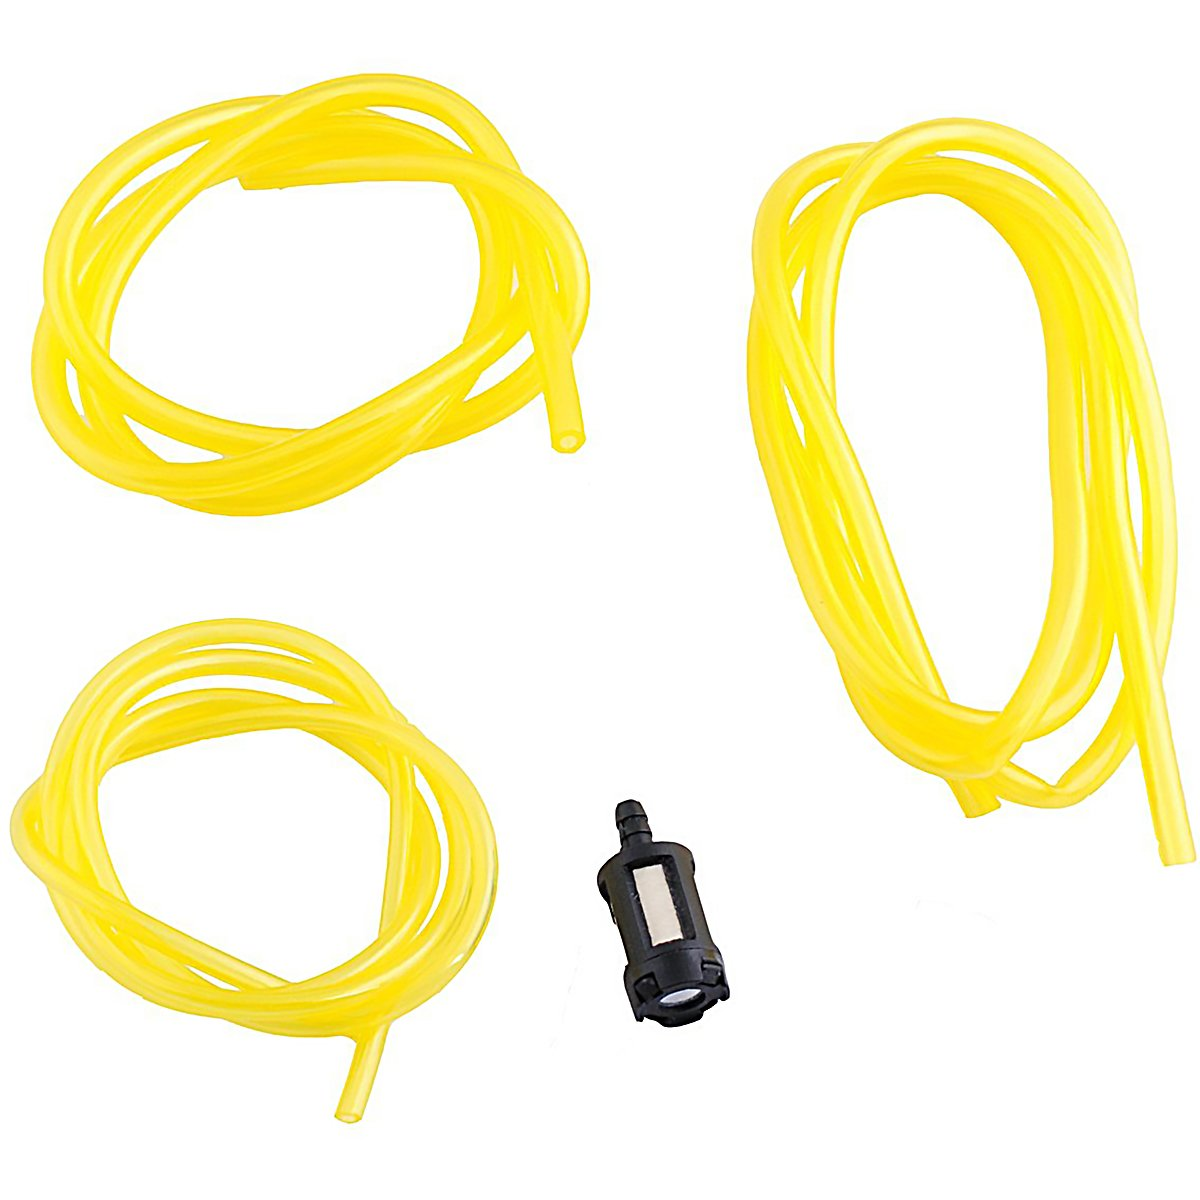 3 Size 14 2 Cycle Fuel Line Repair Kit for Chainsaws Snow Blowers Weedeaters, For Poulan Craftsman Snapper Homelite Ryobi JINHUA SUJU